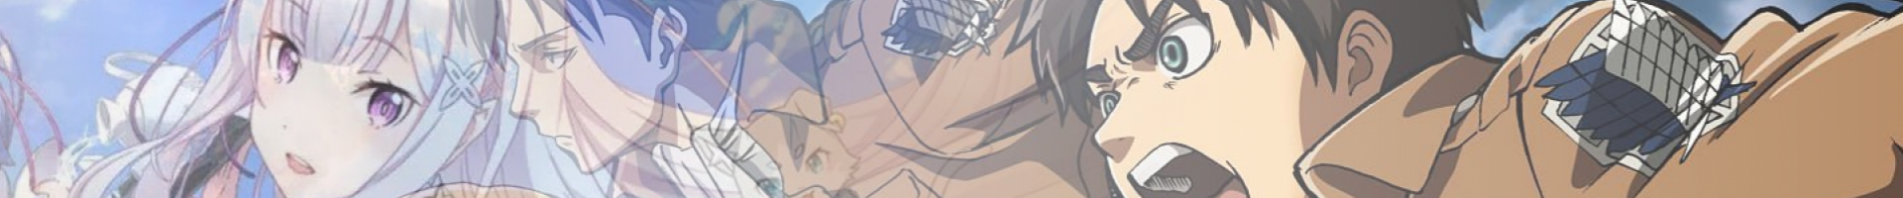 cropped-cropped-cropped-animeblog_2020.png